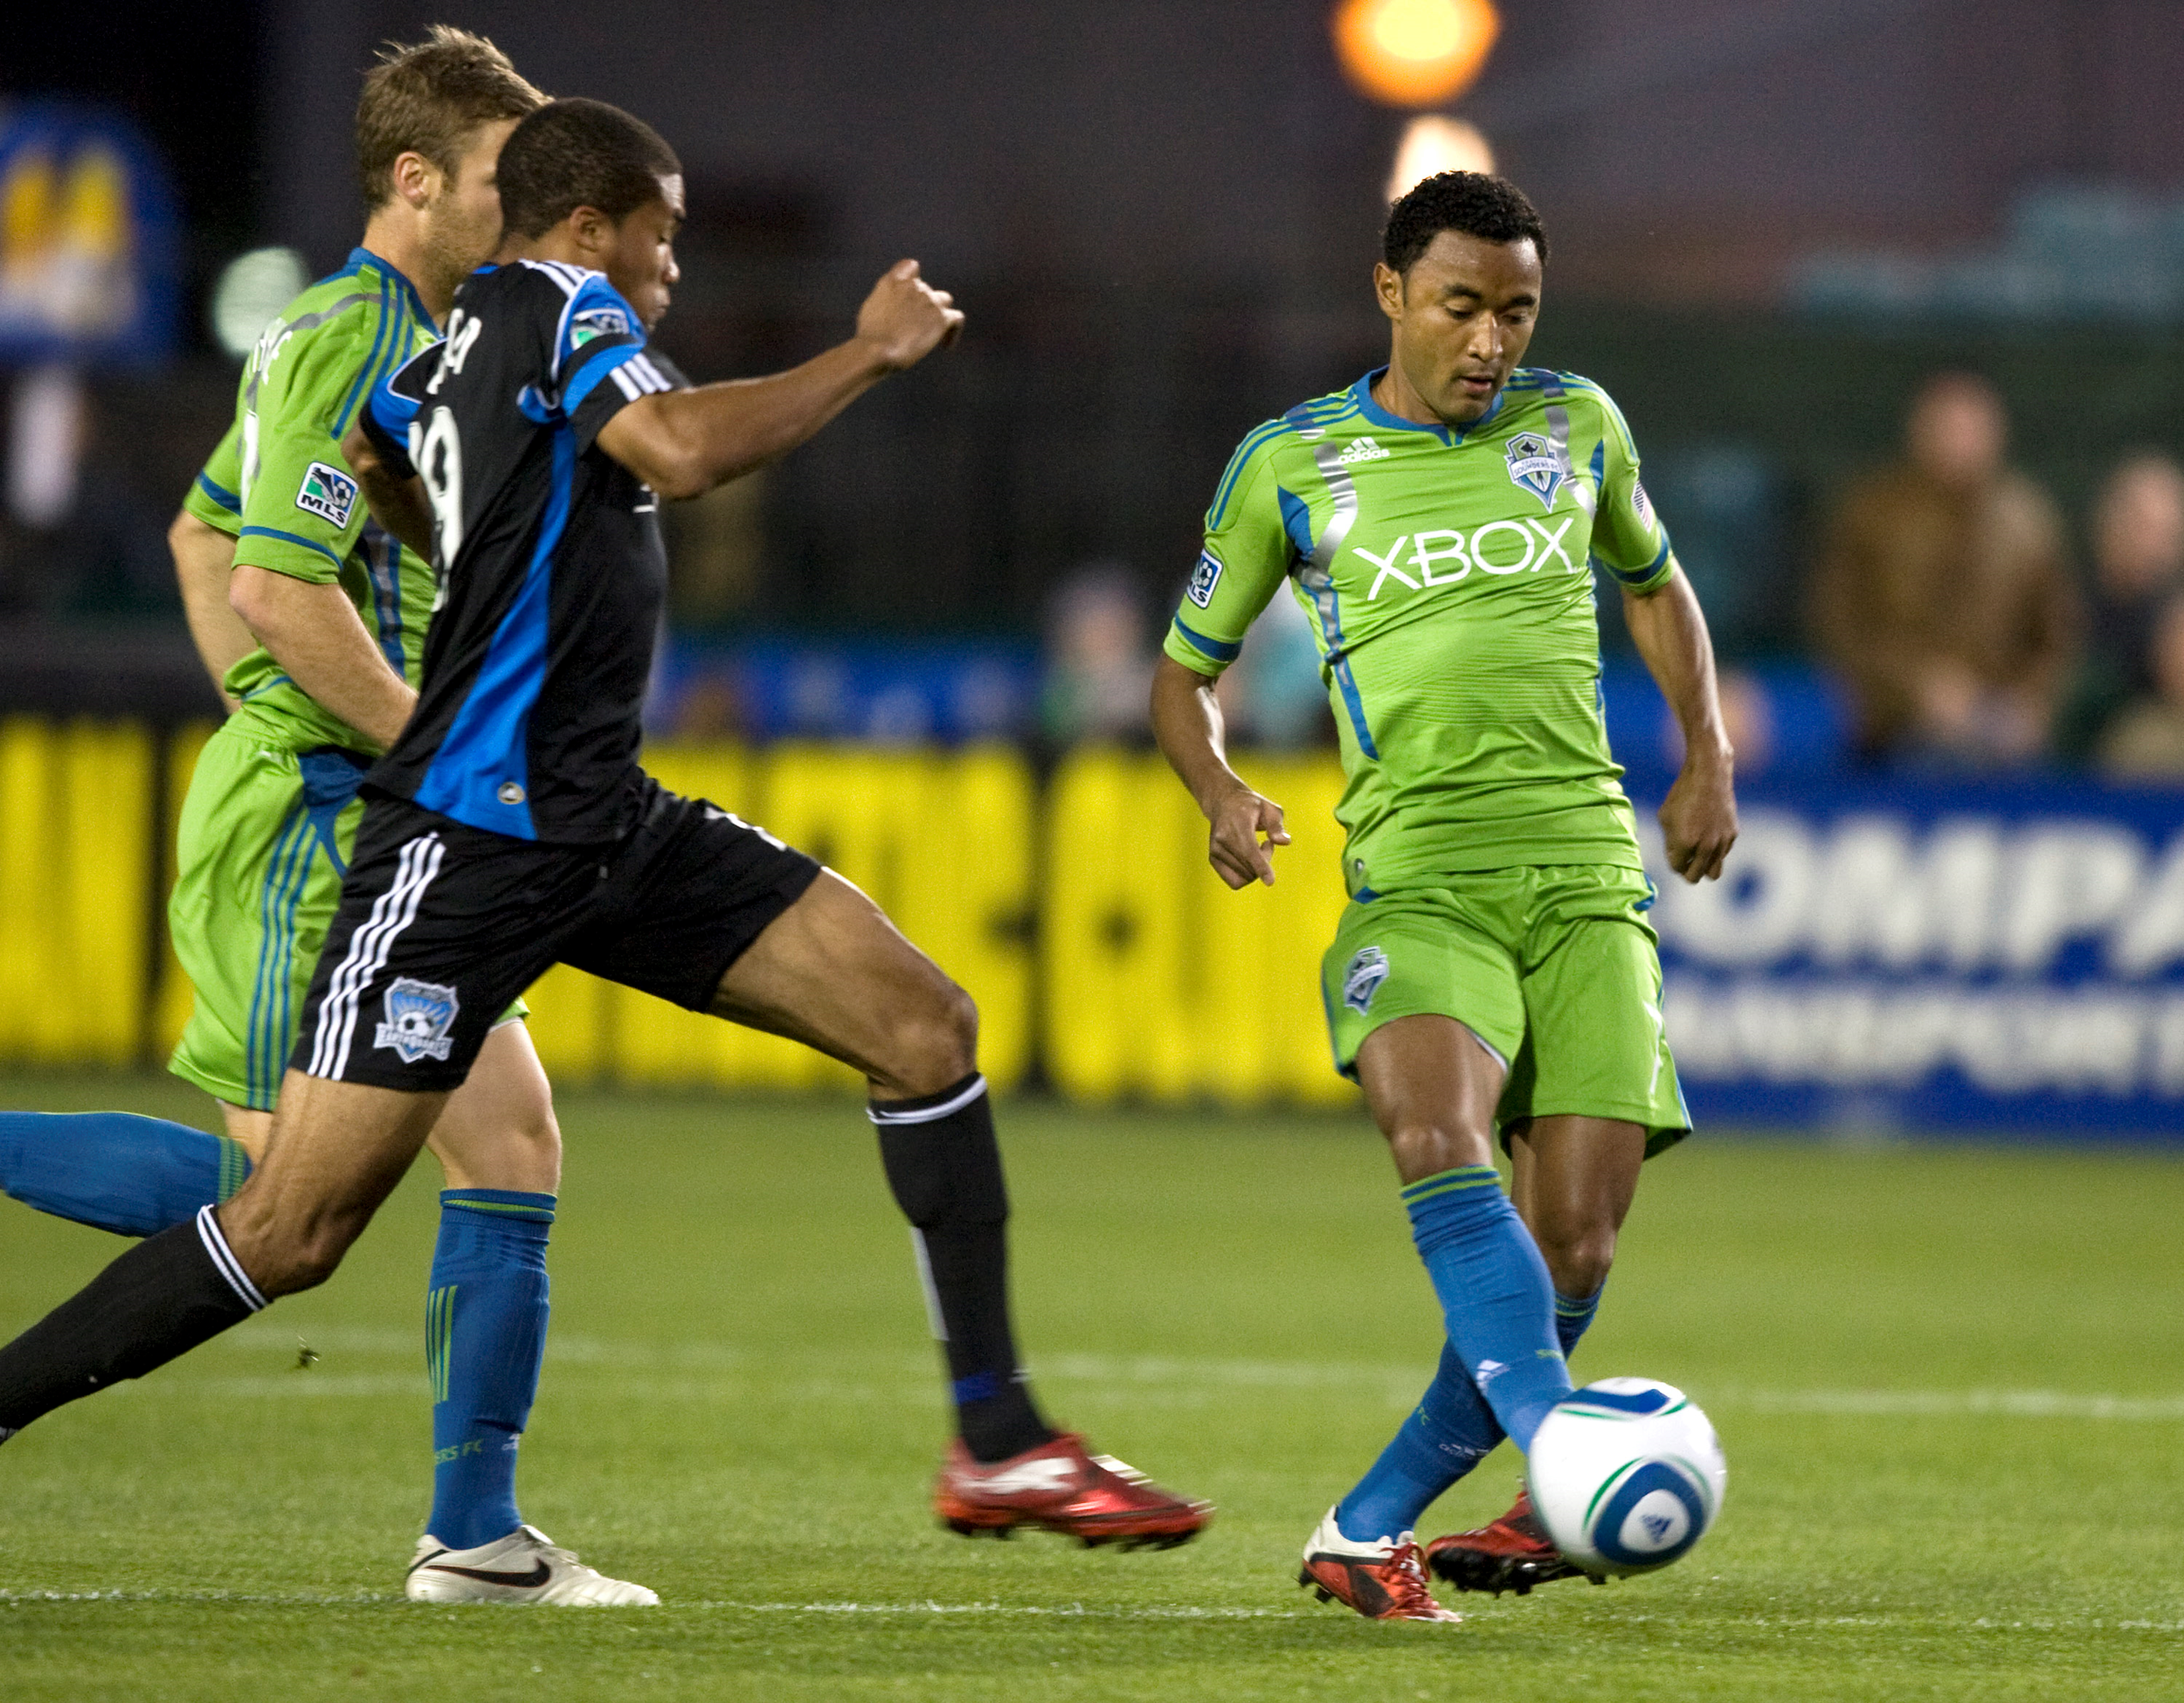 JAMES RILEY - SEATTLE SOUNDERS FC